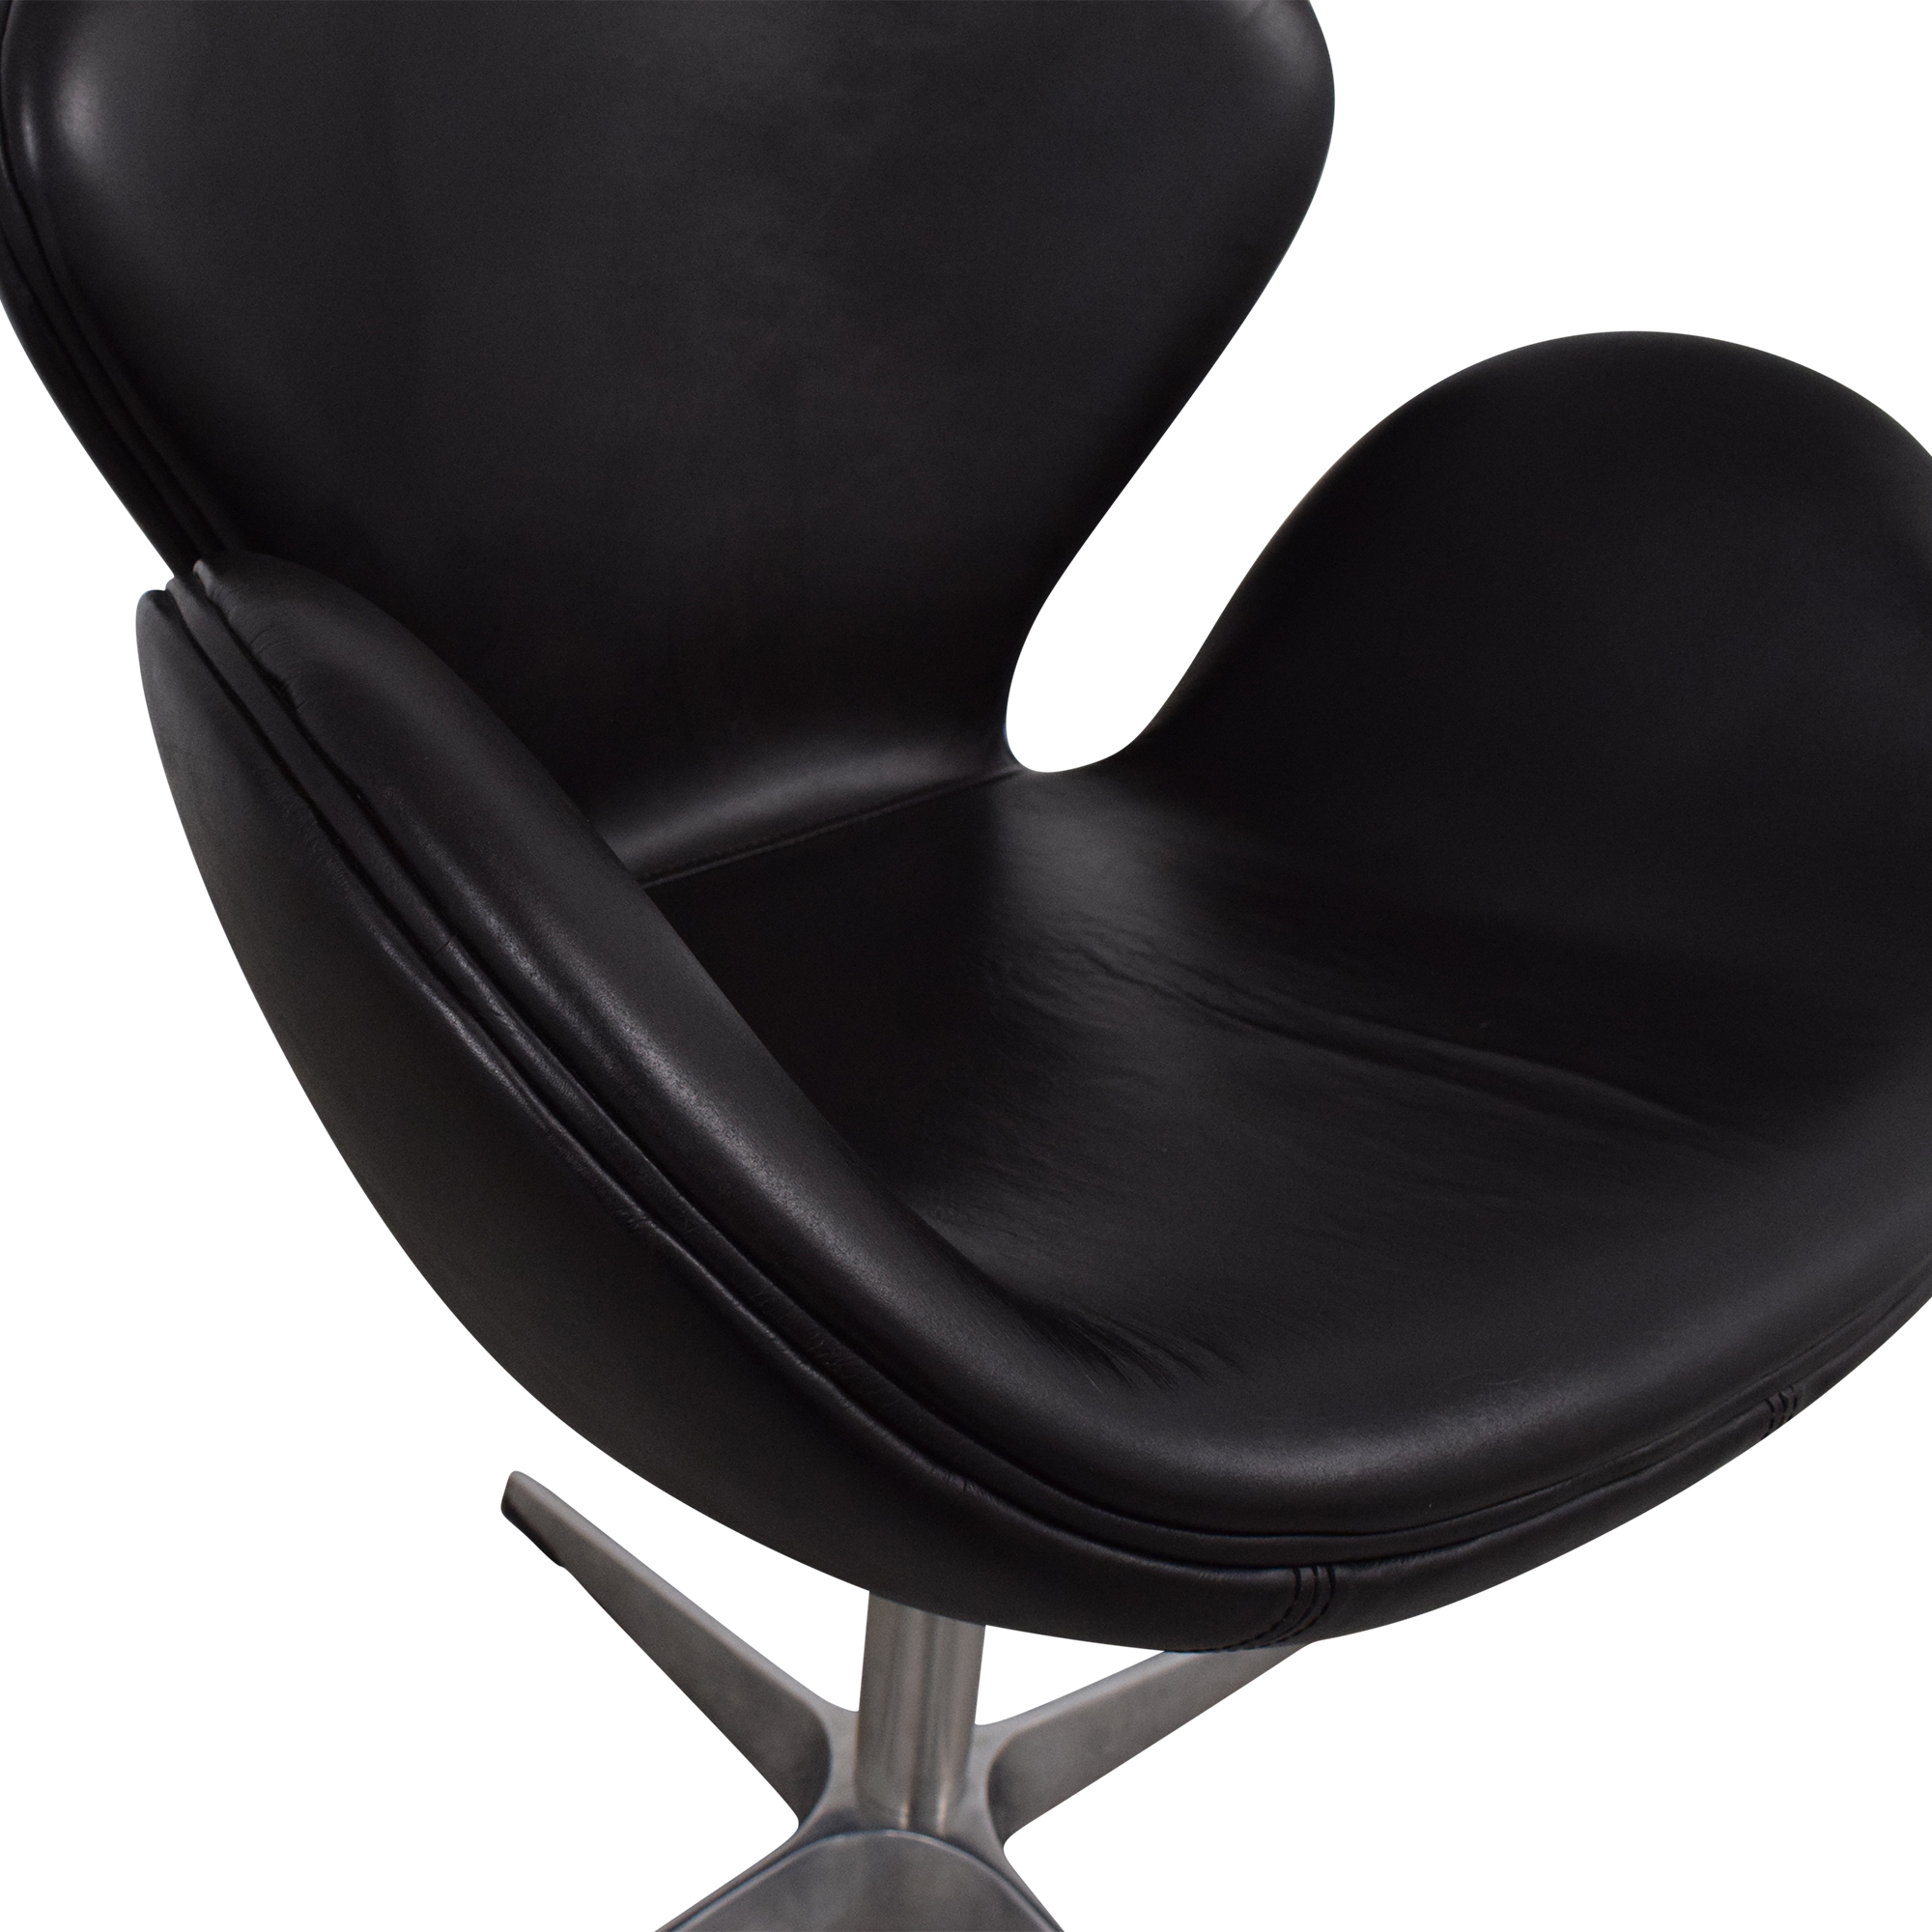 buy ABC Carpet & Home Jacobsen-Style Swan Chair ABC Carpet & Home Chairs